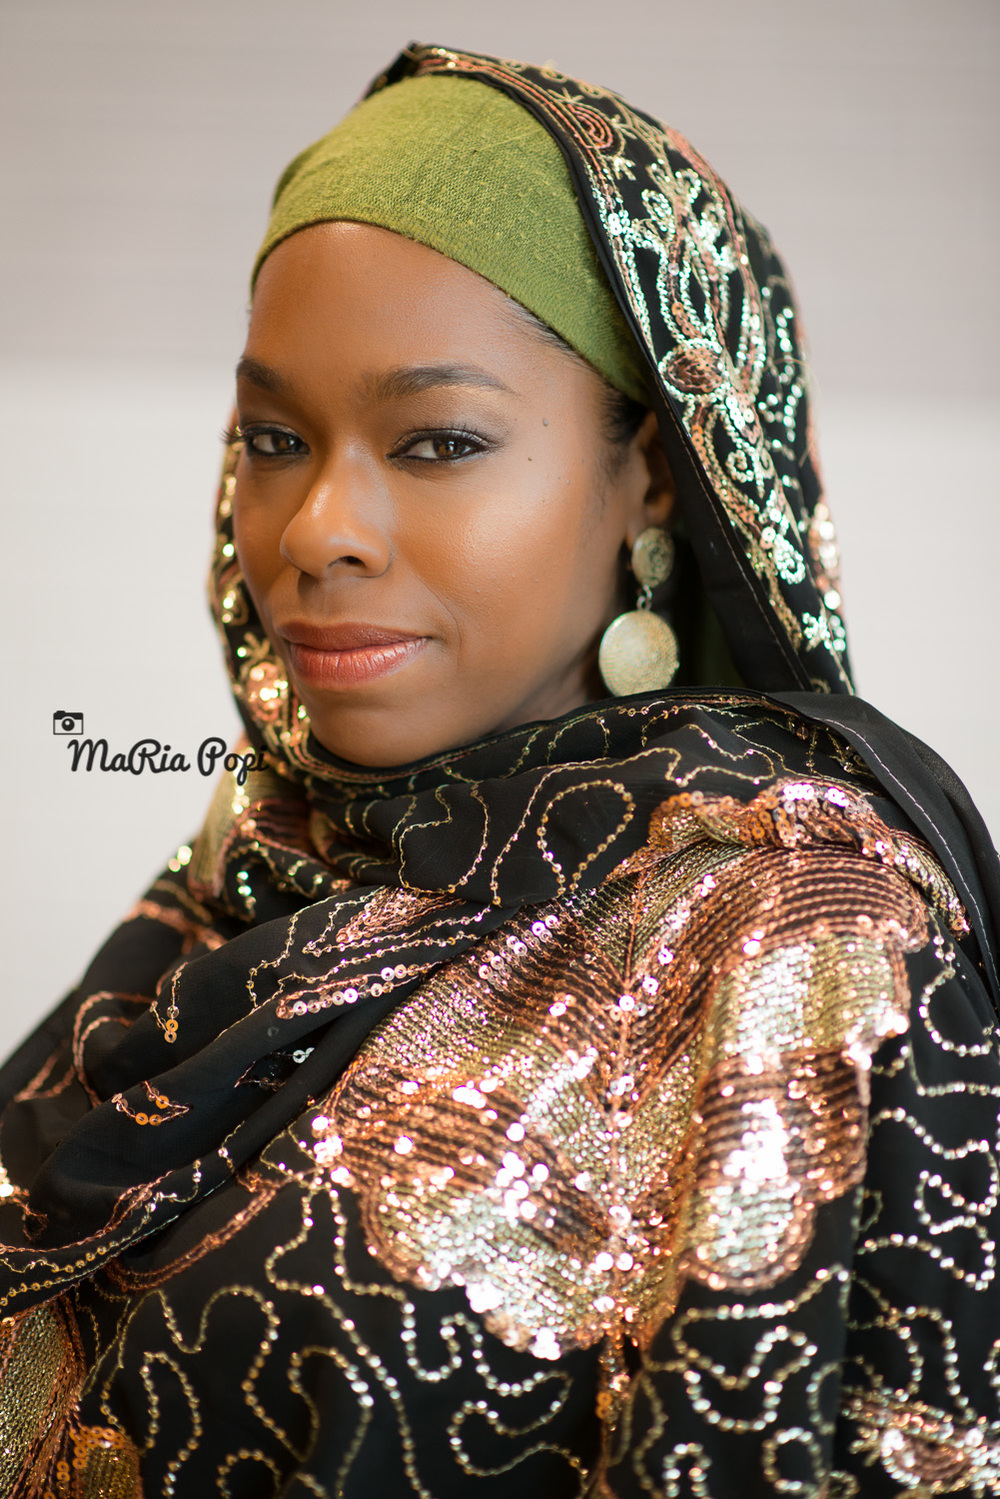 The Host - Tasleem Jamila - world renowned author, inspirational speaker , poet and writer.